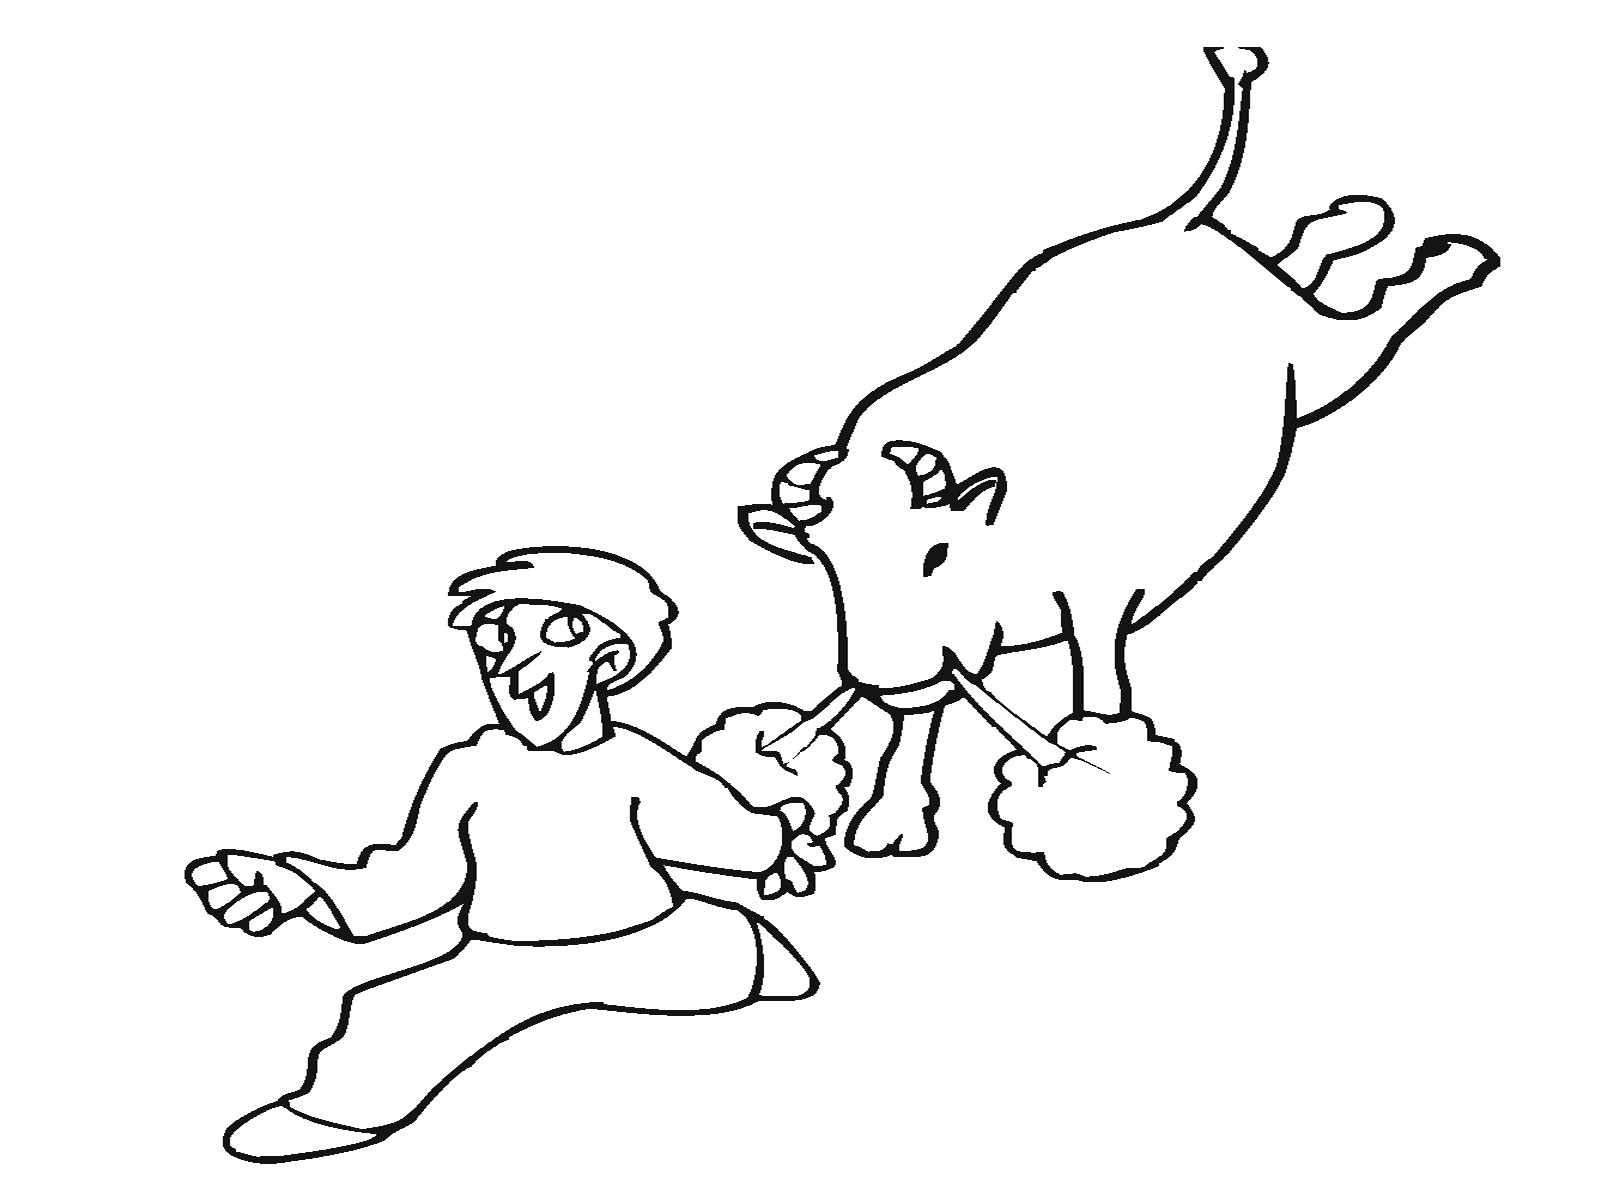 Bull Coloring Pages Printable Realistic Coloring Pages